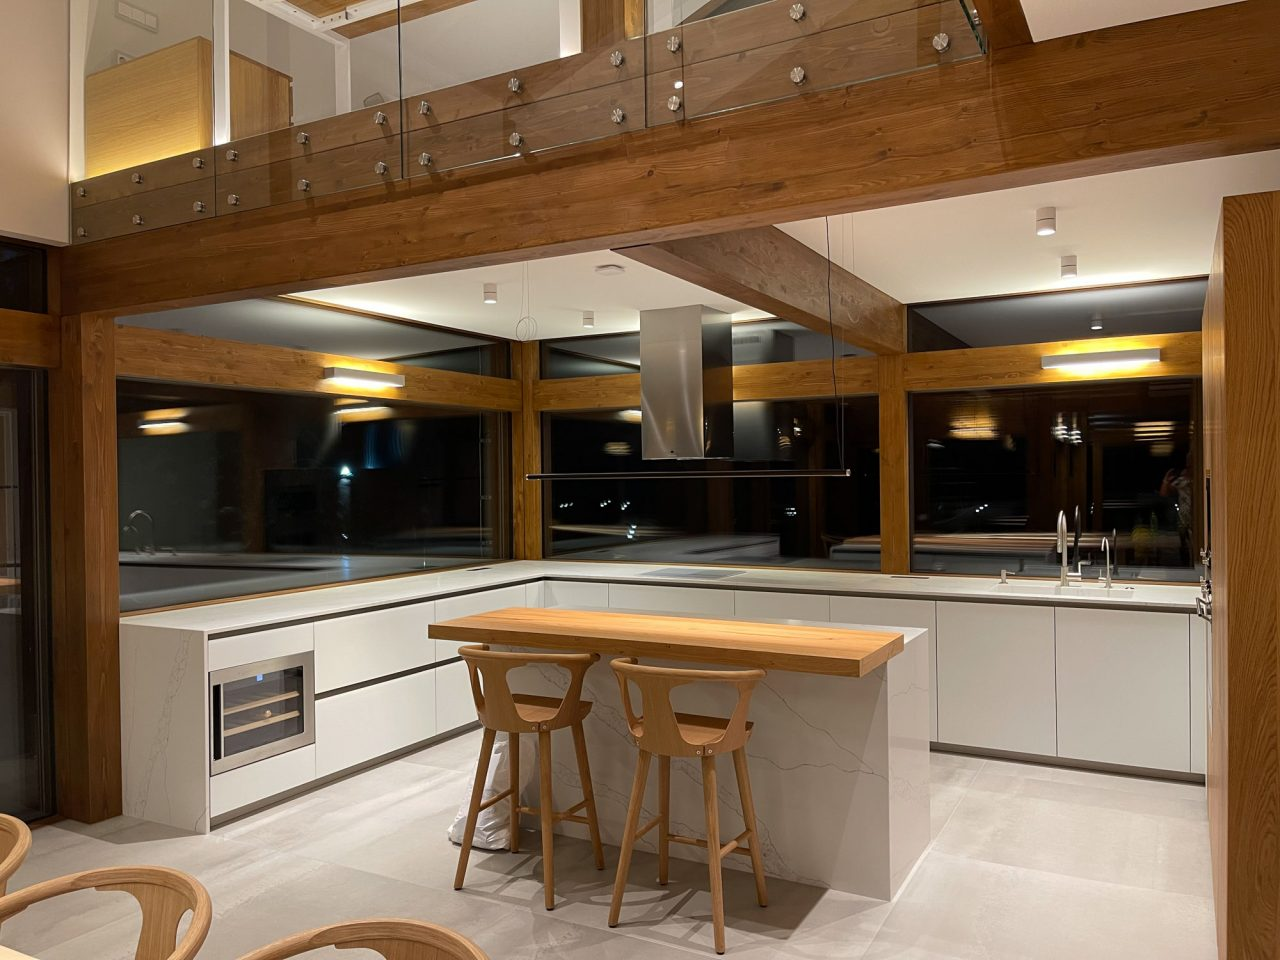 Hlass_house_KAGER - Hurii_36